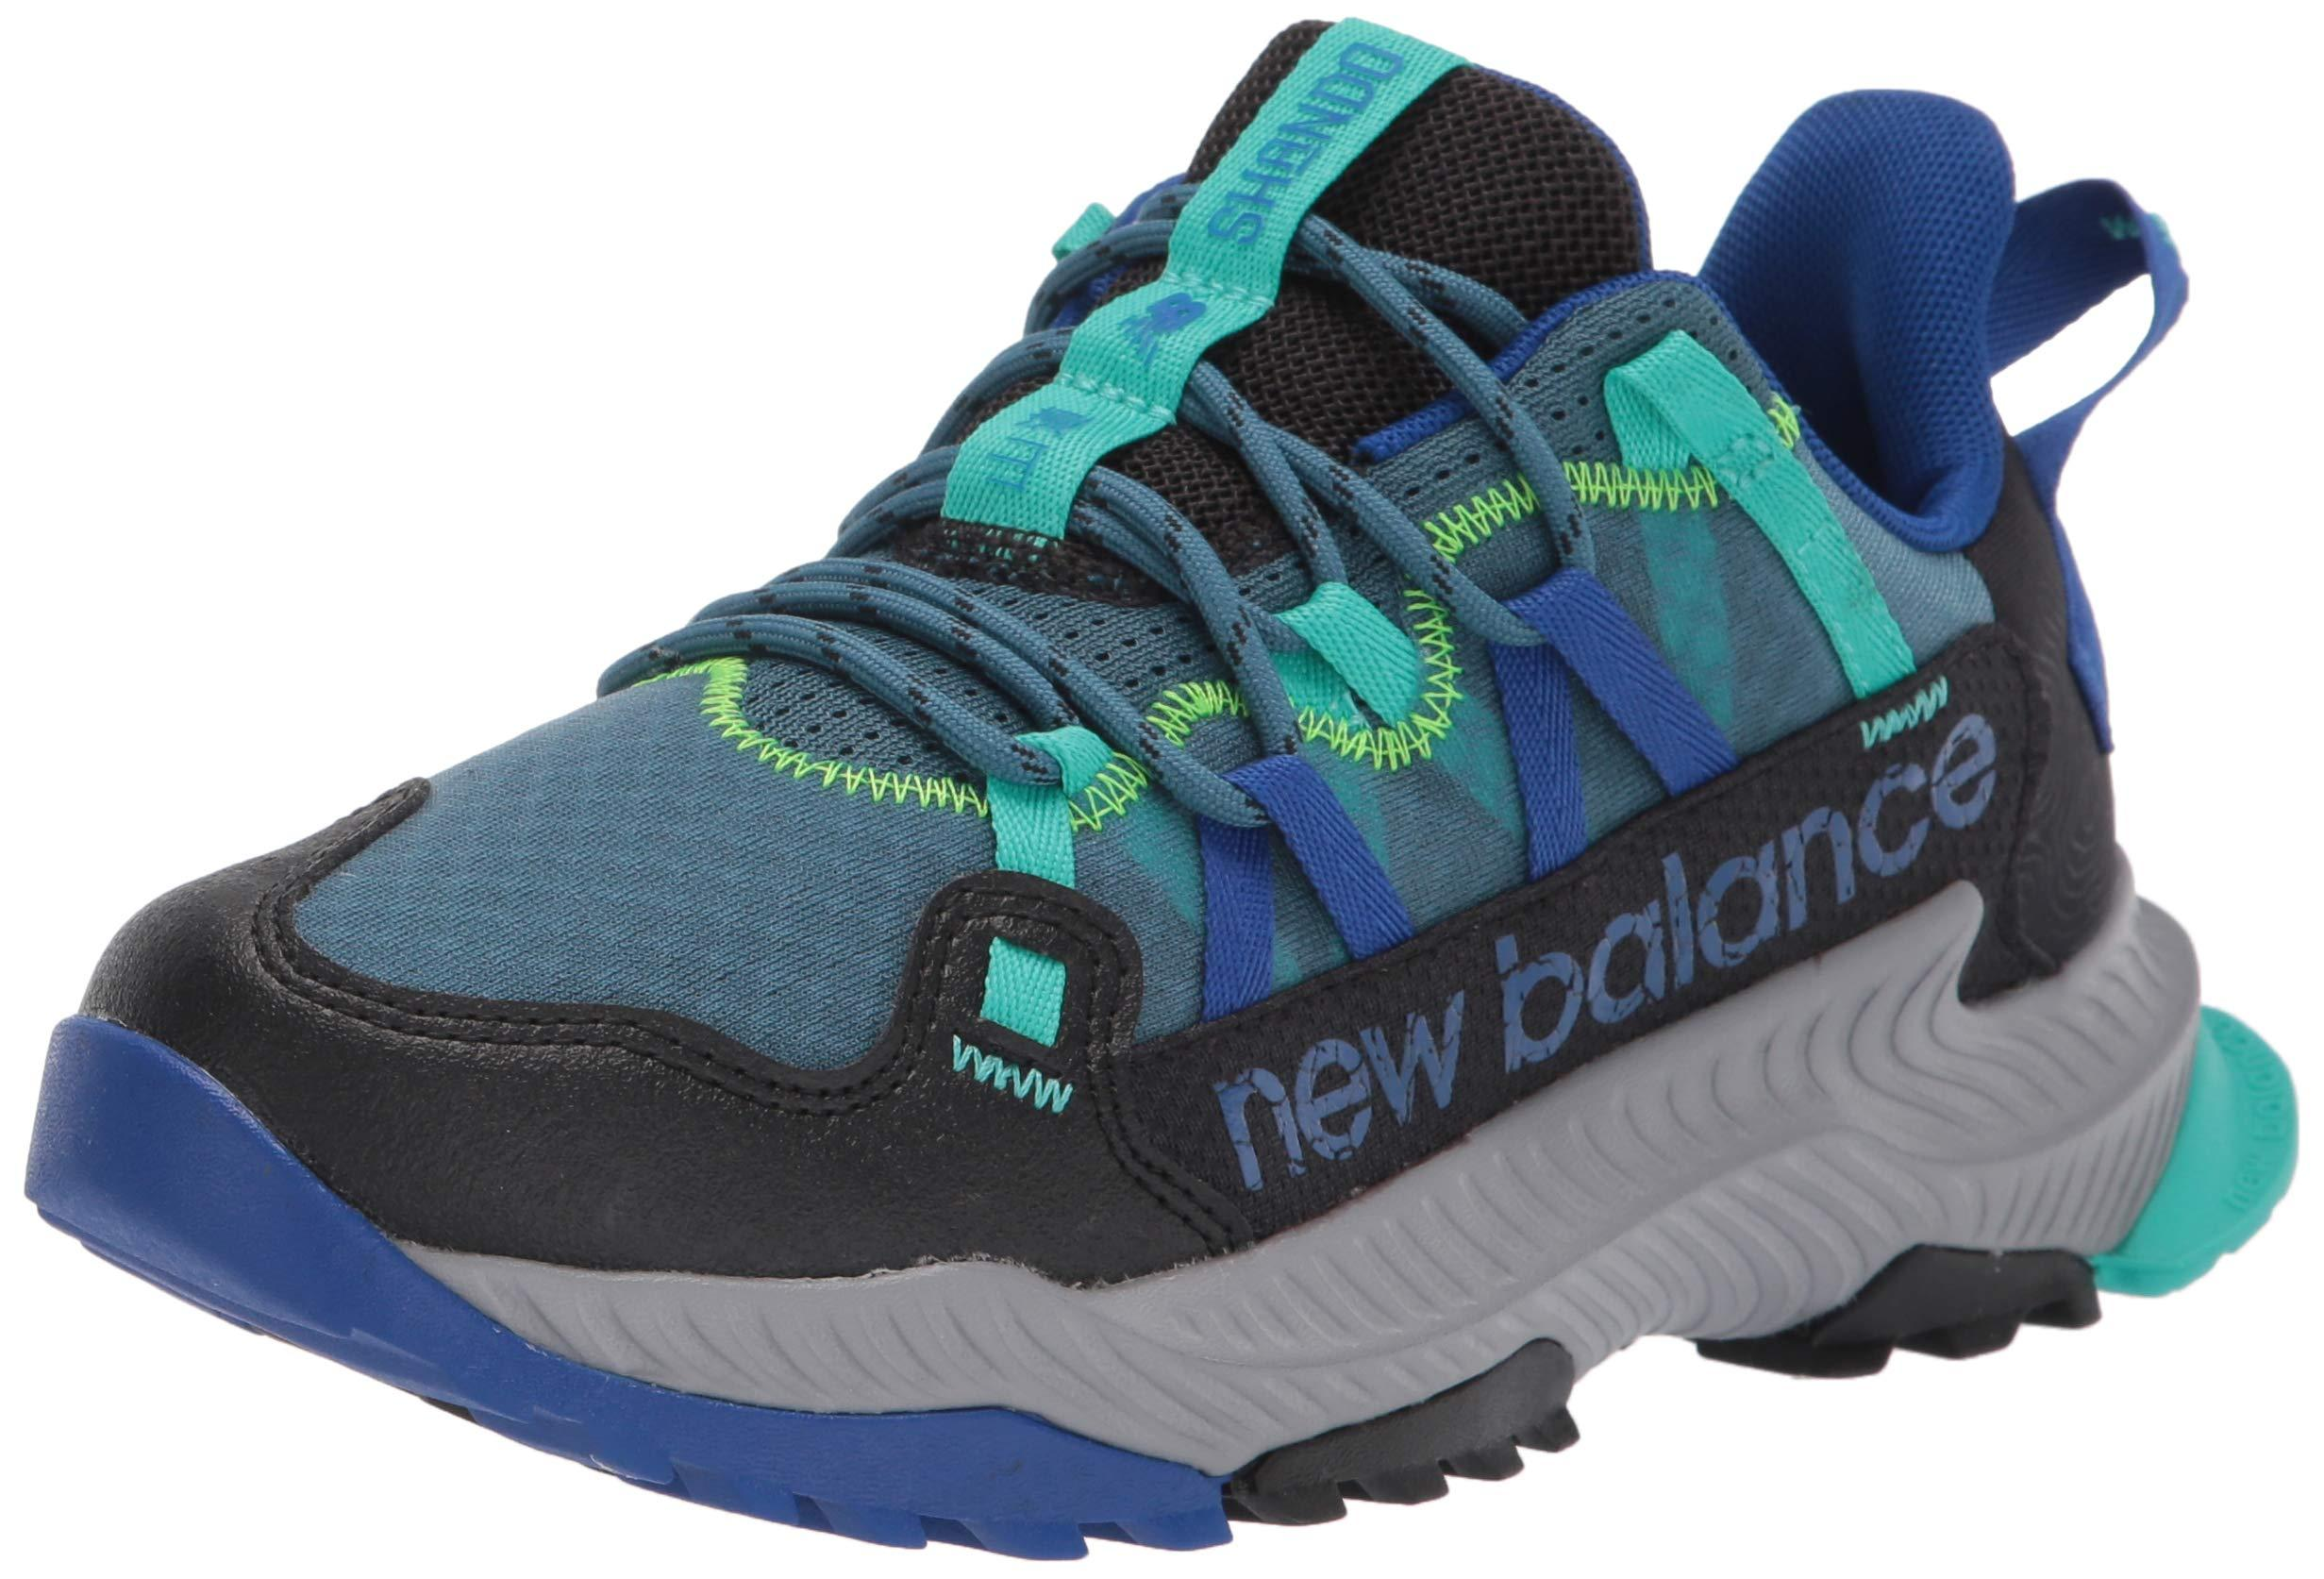 New Balance Shando Low-top sneakers in Black/Blue (Blue) for Men ...